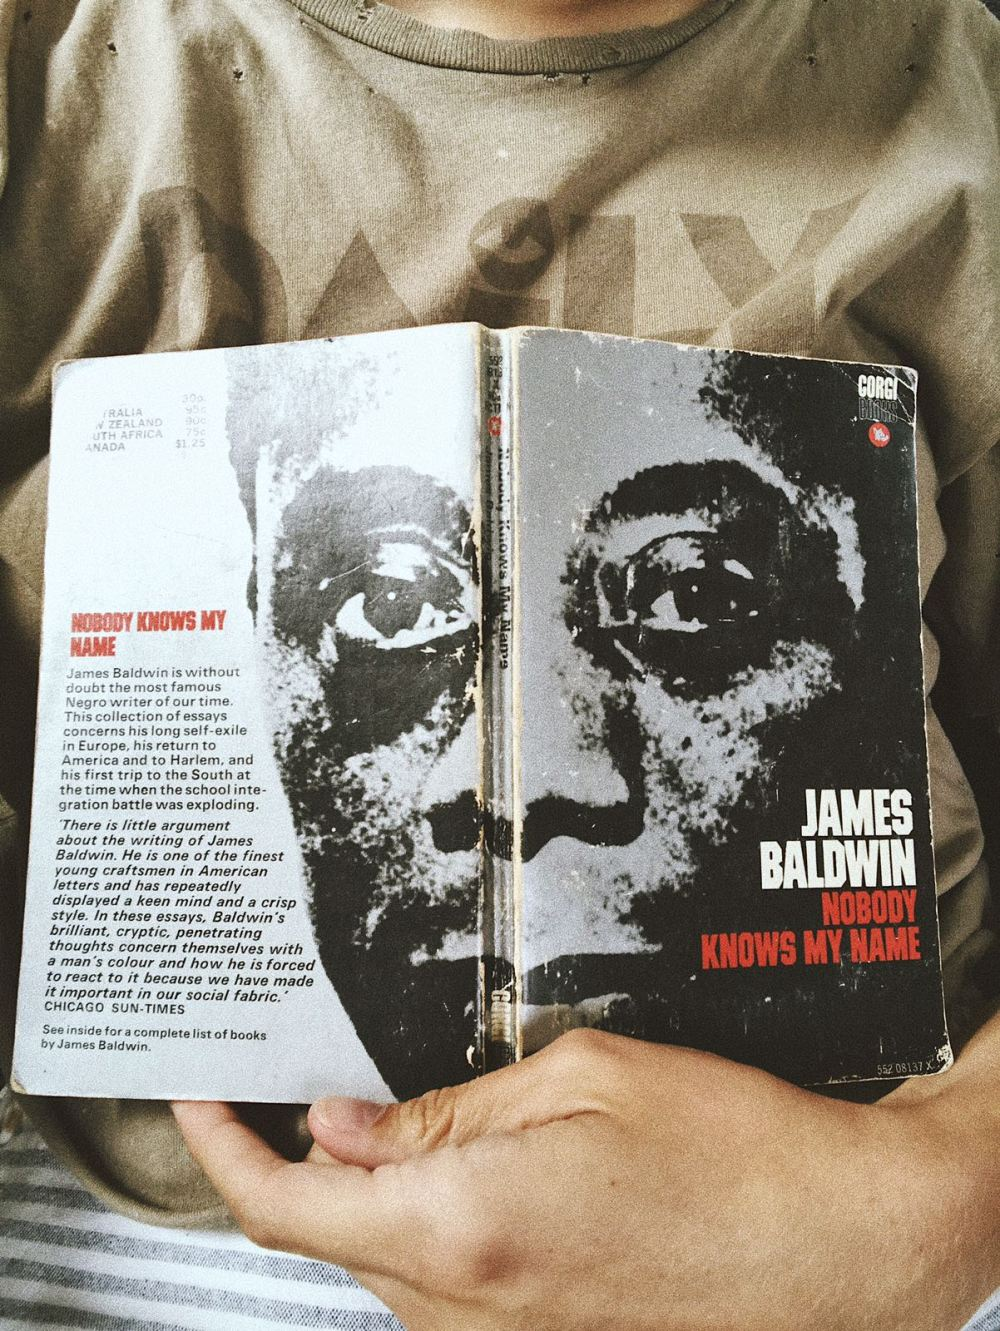 James Baldwin Couldn't be More Relevant